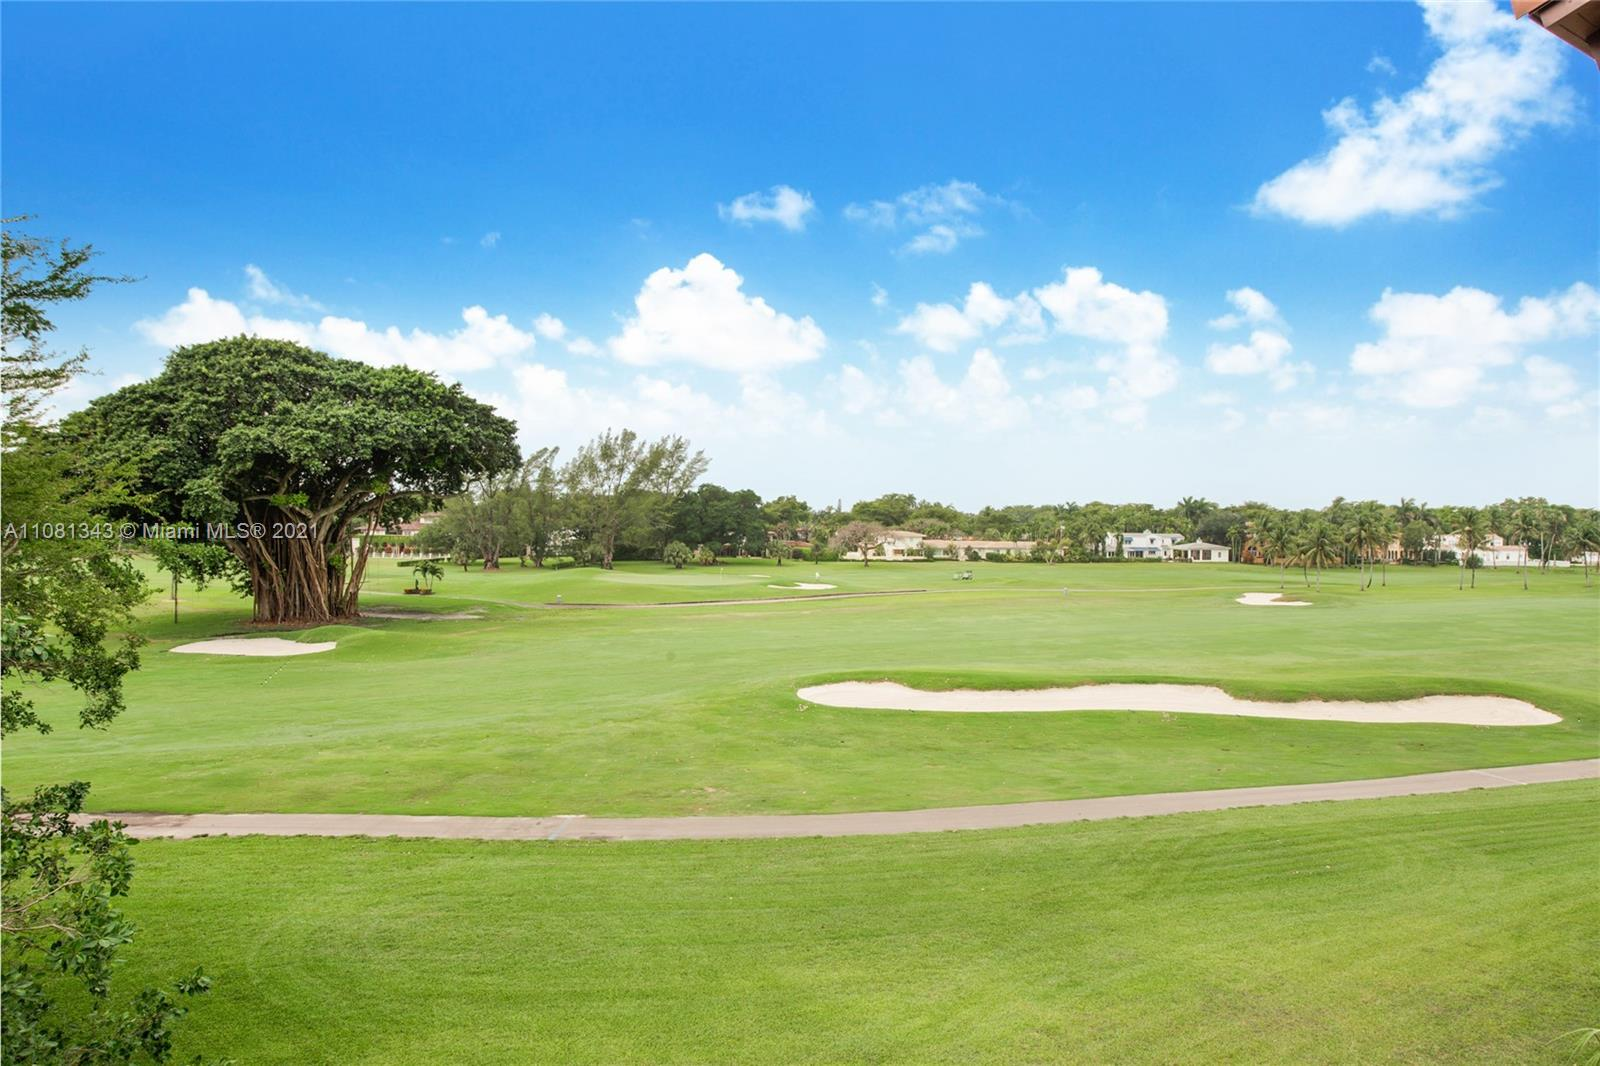 Only available golf course unit. Be one of the fortunate few to live next to the iconic Biltmore Hotel. Enjoy Landmark-resort living in this boutique condo, 11 units on the golf course. Only condo of its kind in an established single-family neighborhood. This penthouse flat offers direct golf course views, private elevator, 3 balconies, & covered terrace w/summer kitchen and 3 covered parking. Den converted to 4th bedroom by adding door. Timeless beauty is complemented by contemporary interiors, Italian Veneta Cucina kitchen, Wolf/Sub Zero appliances. Enjoy the residents' spa and courtyard, deck & tall privacy hedge. LA incl. covered Summer kitchen and TOTAL includes balcony.